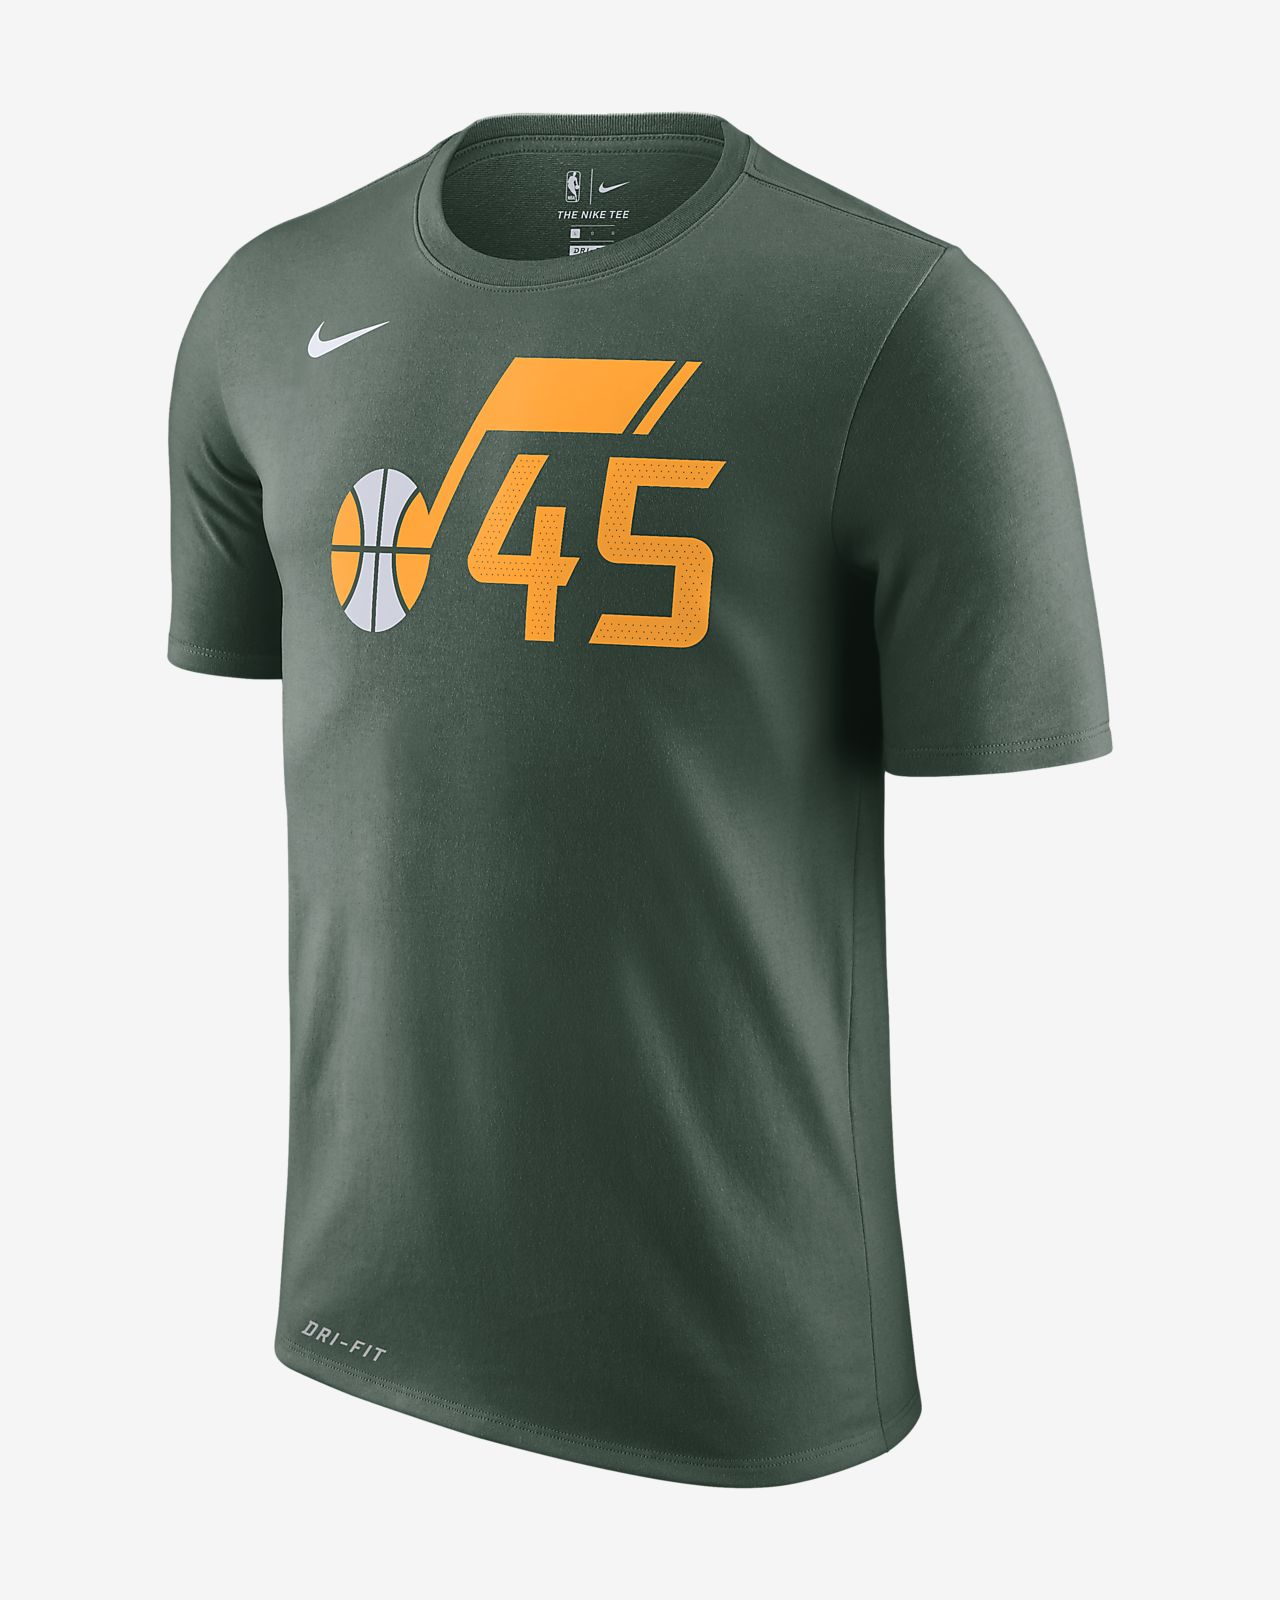 a332c4b443c5 Men s NBA T-Shirt. Donovan Mitchell Utah Jazz City Edition Nike Dri-FIT